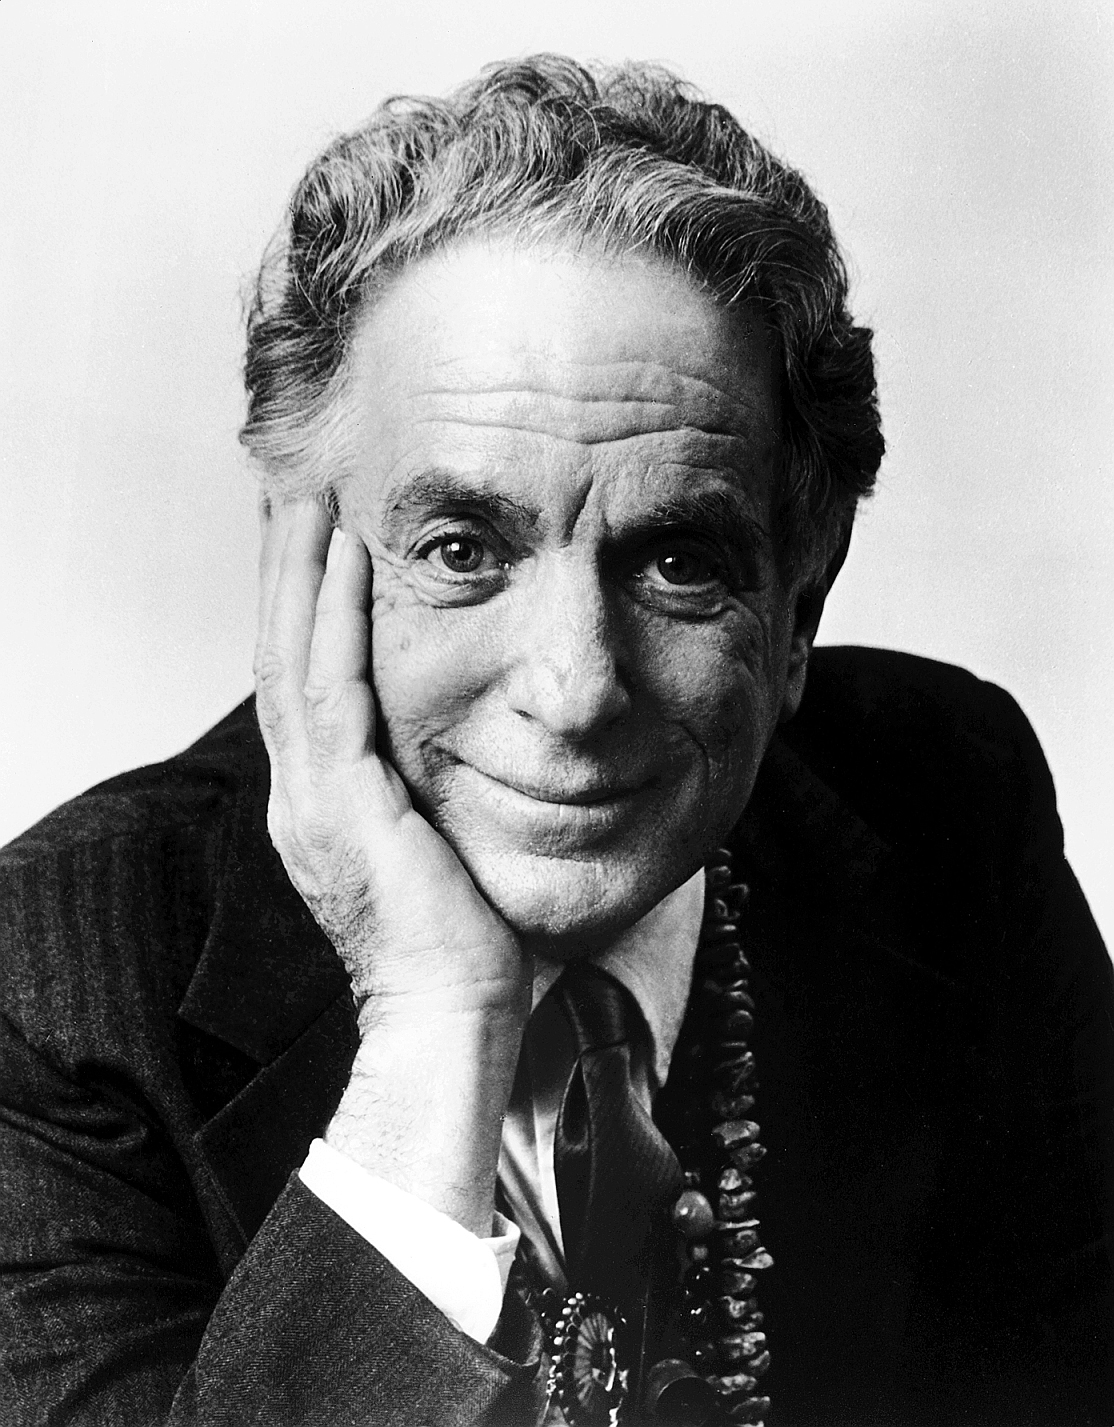 David Amram